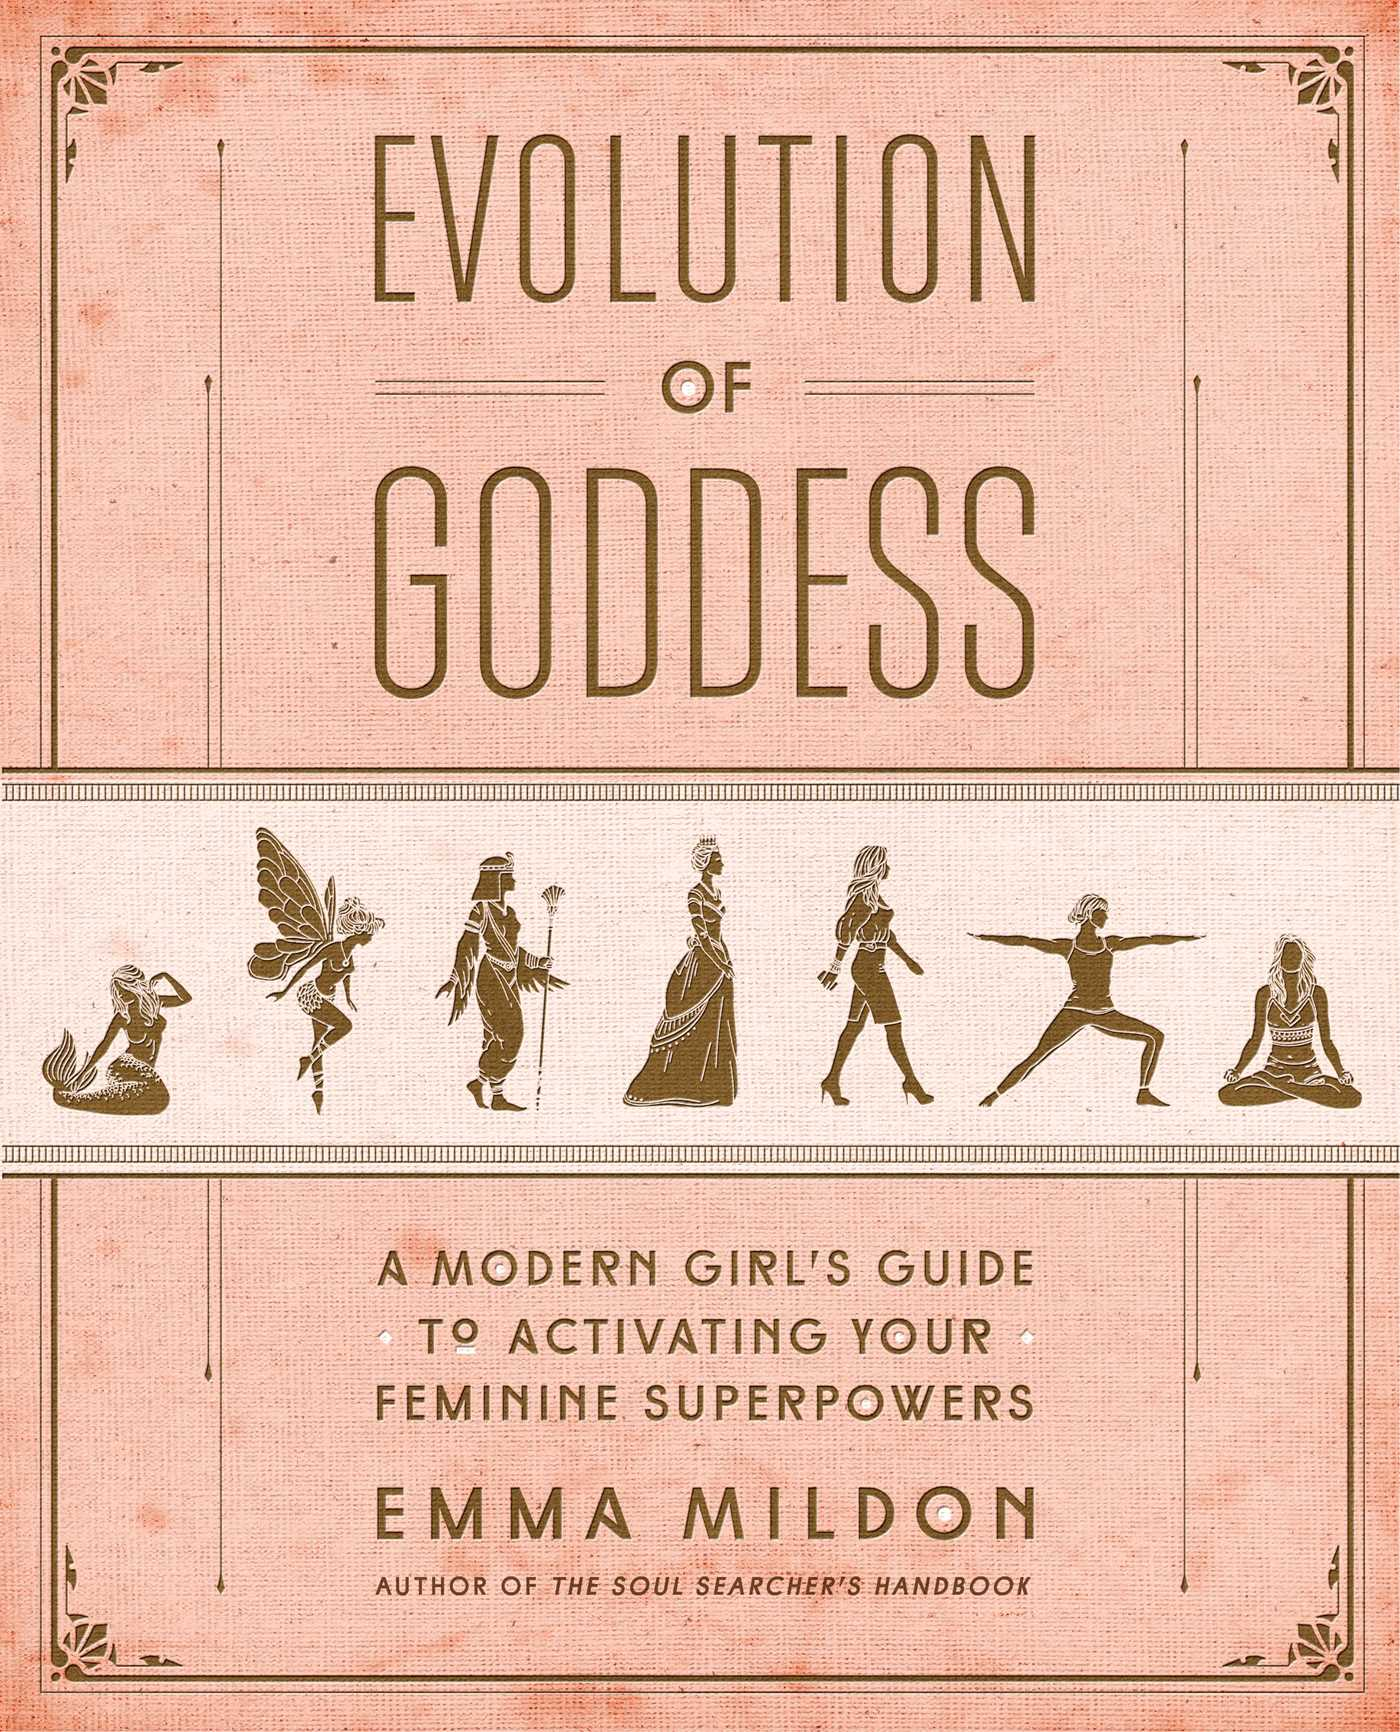 System failure digital evolution book 2 ebook array evolution of goddess book by emma mildon official publisher page rh simonandschuster com fandeluxe Image collections